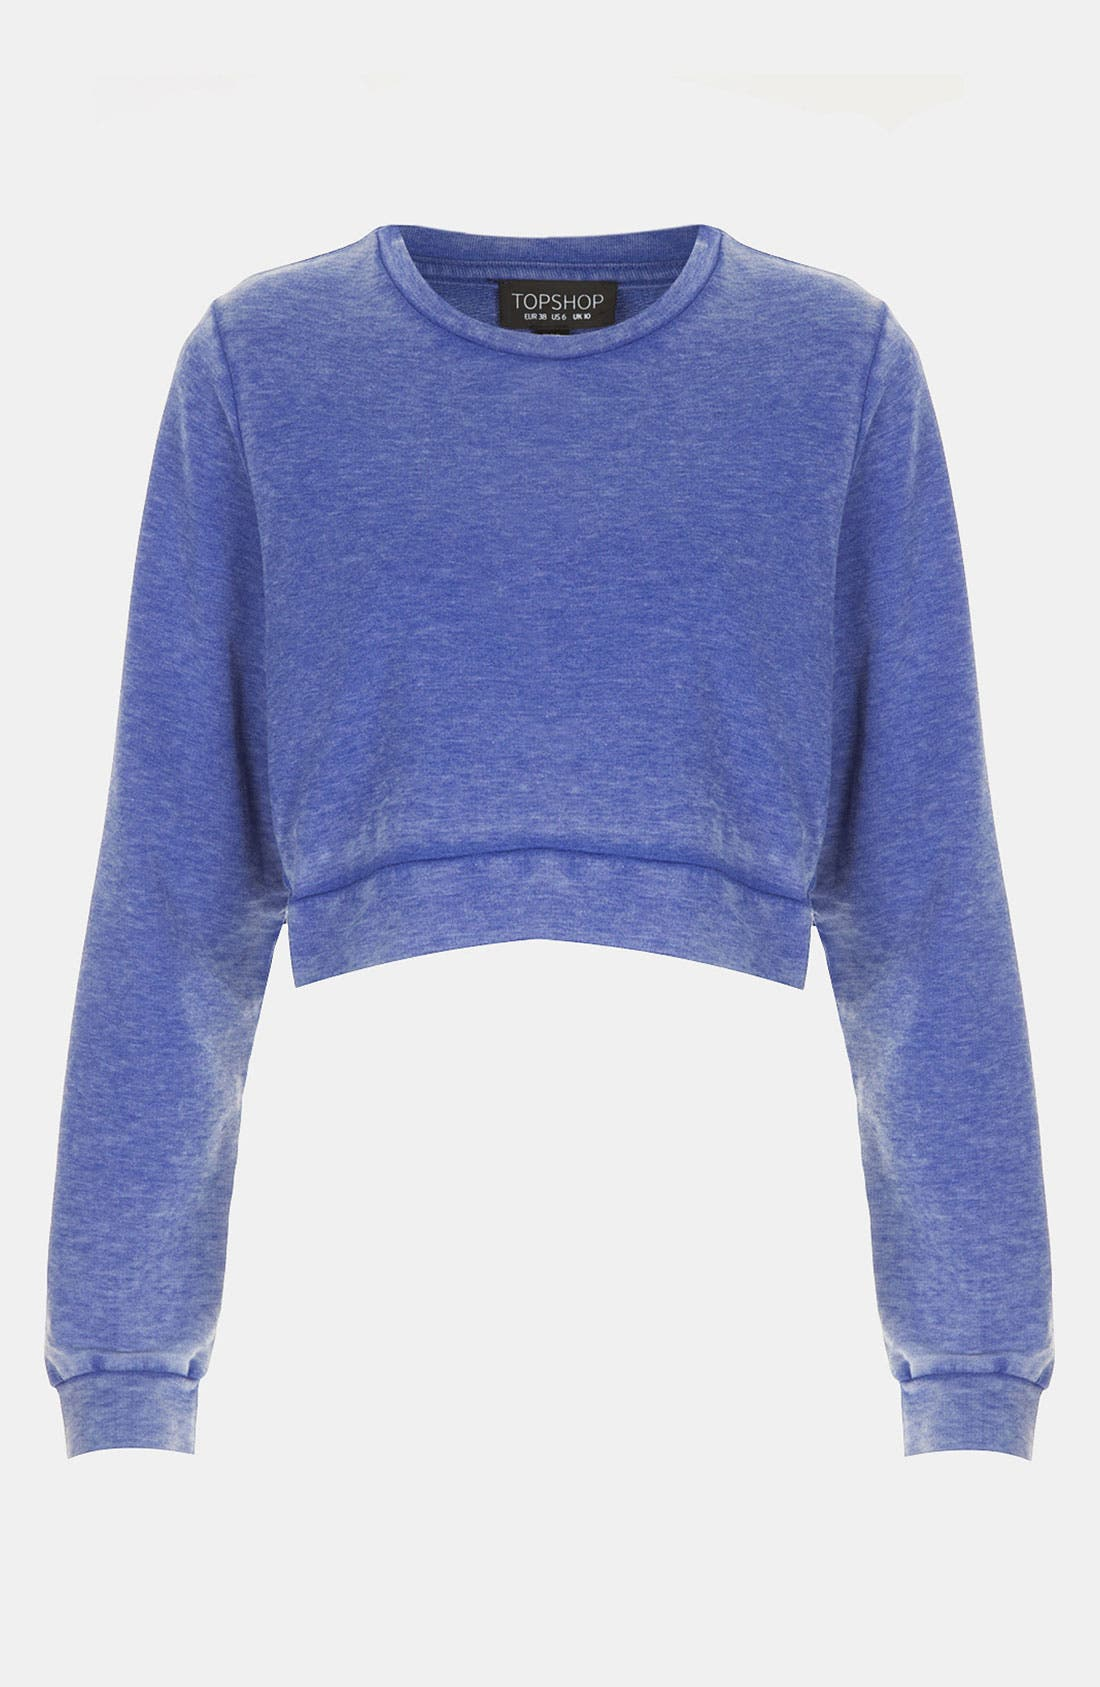 Alternate Image 1 Selected - Topshop Crop Sweatshirt